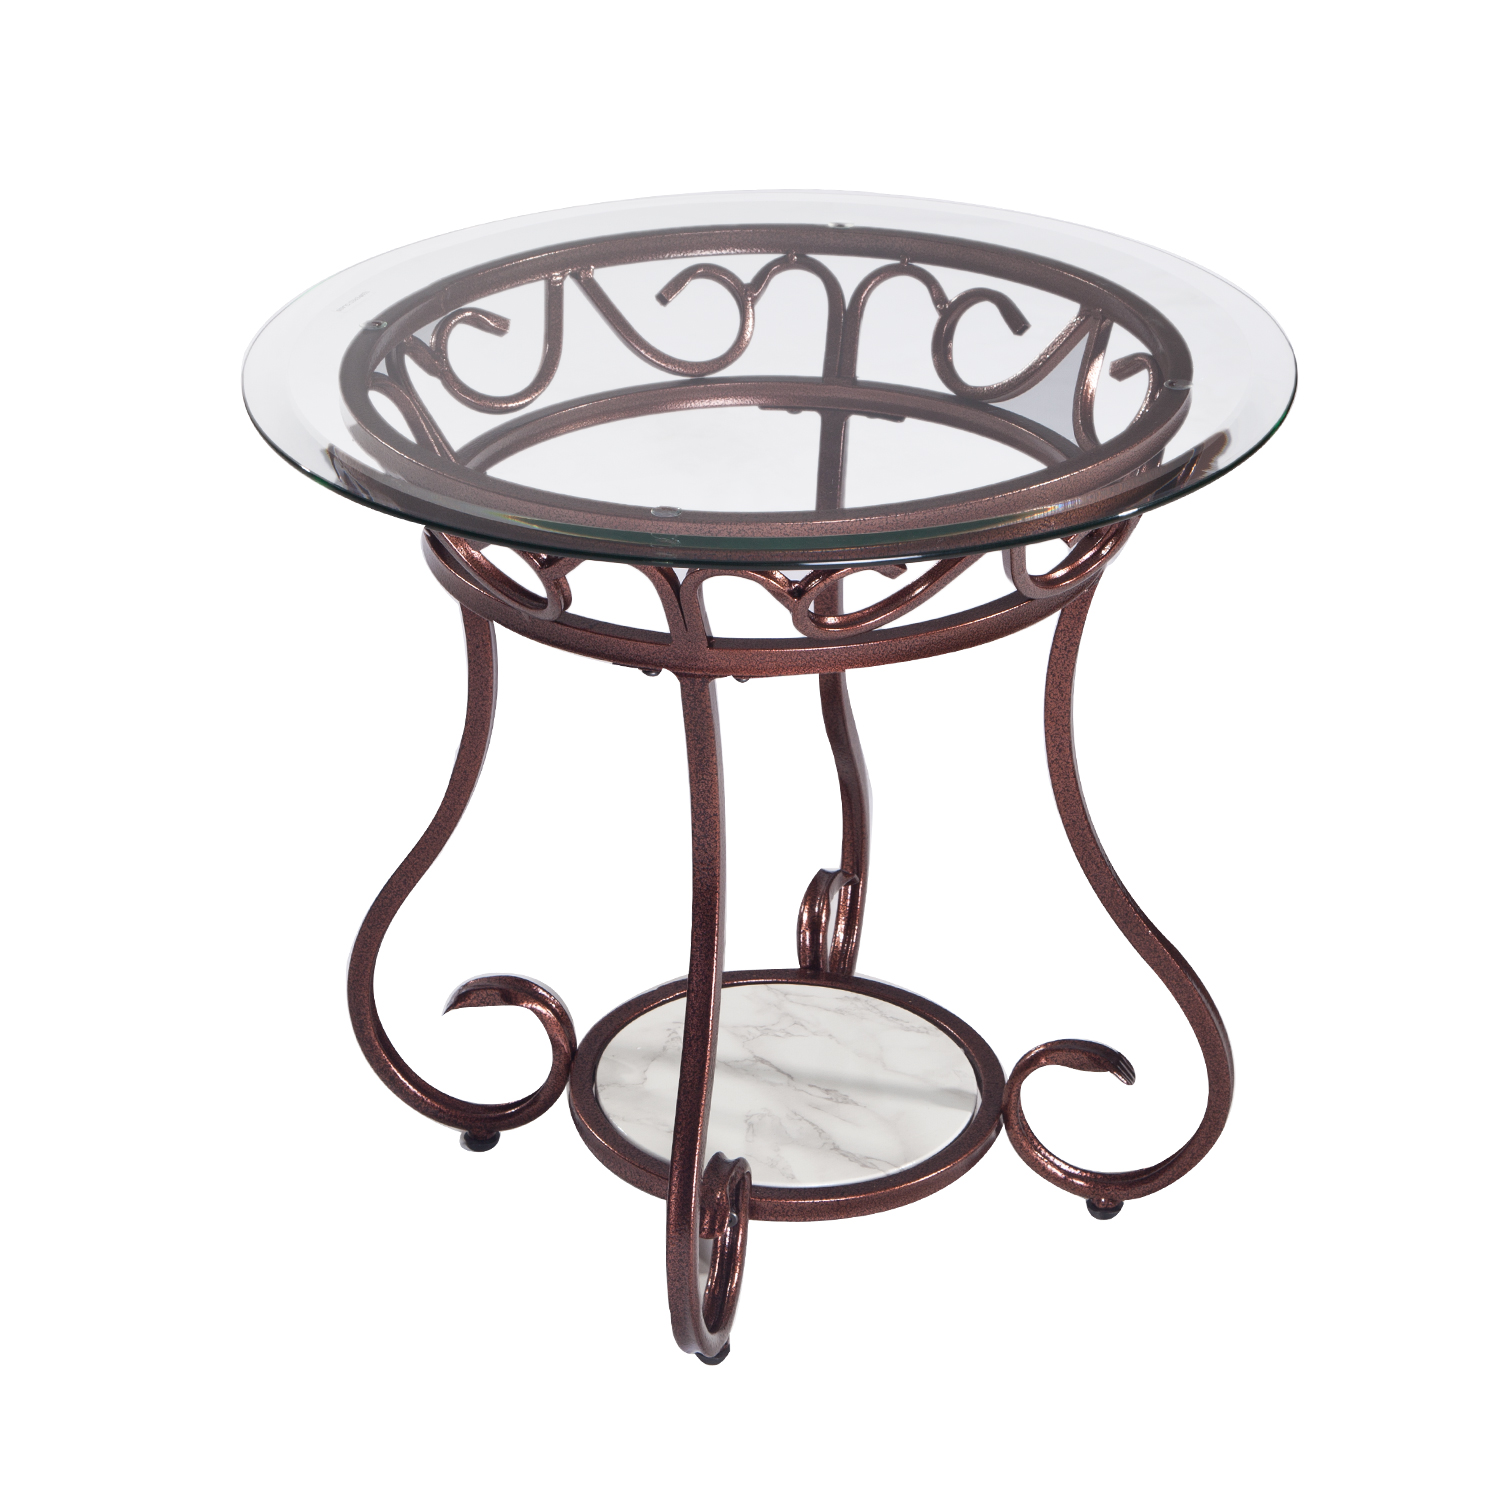 joveco red bronze metal frame round end table with tempered glass accent top drum hampton bay furniture website gold legs inch square tablecloth cherry mission patio umbrella